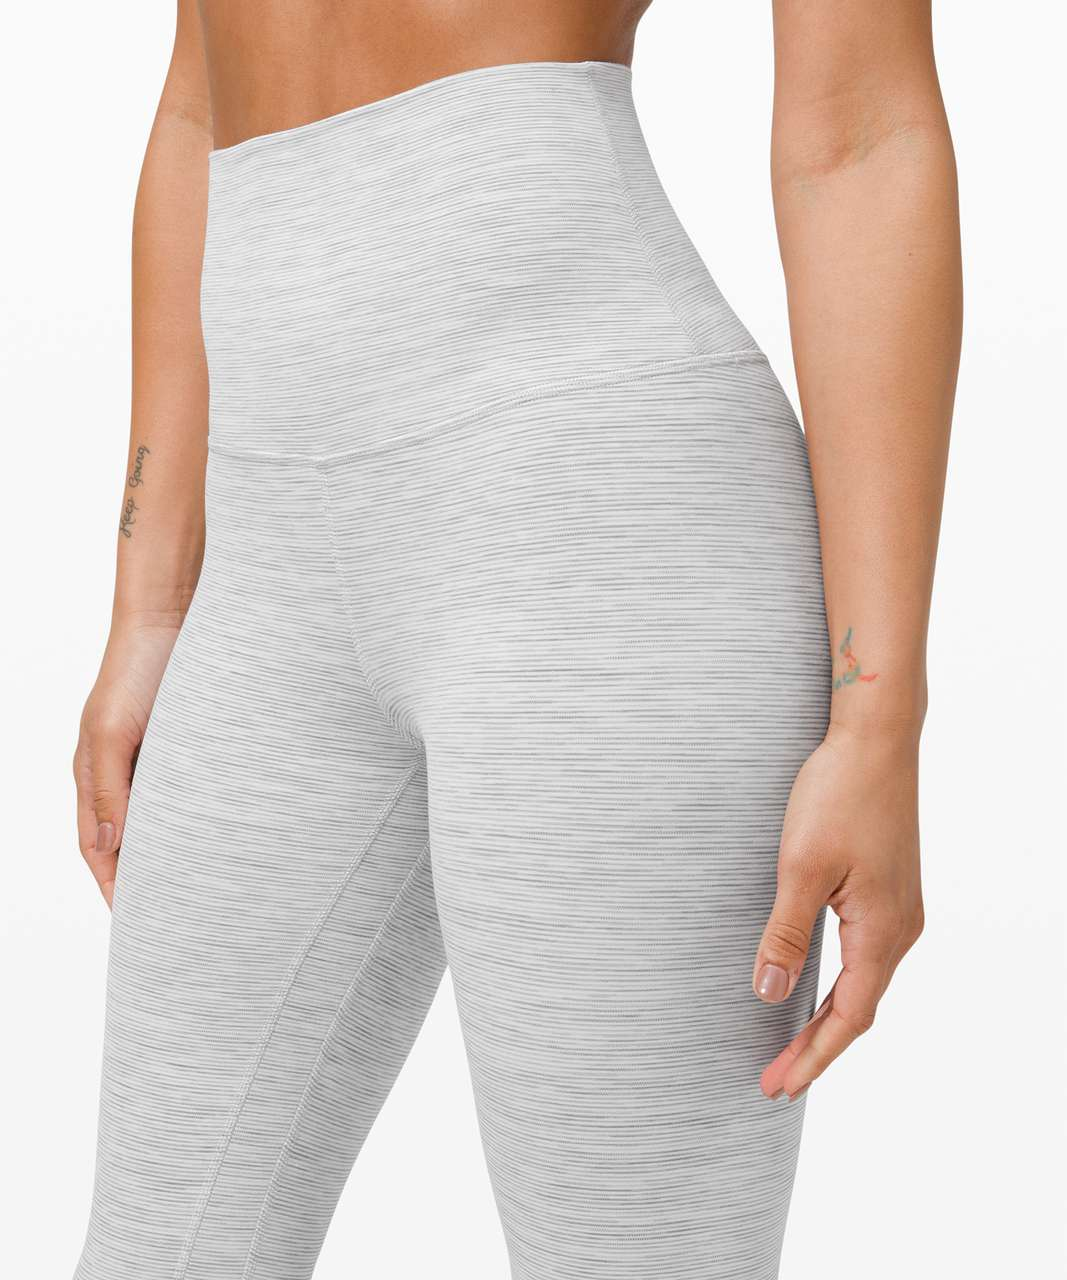 """Lululemon Align Super High-Rise Crop 21"""" - Wee Are From Space Nimbus Battleship"""